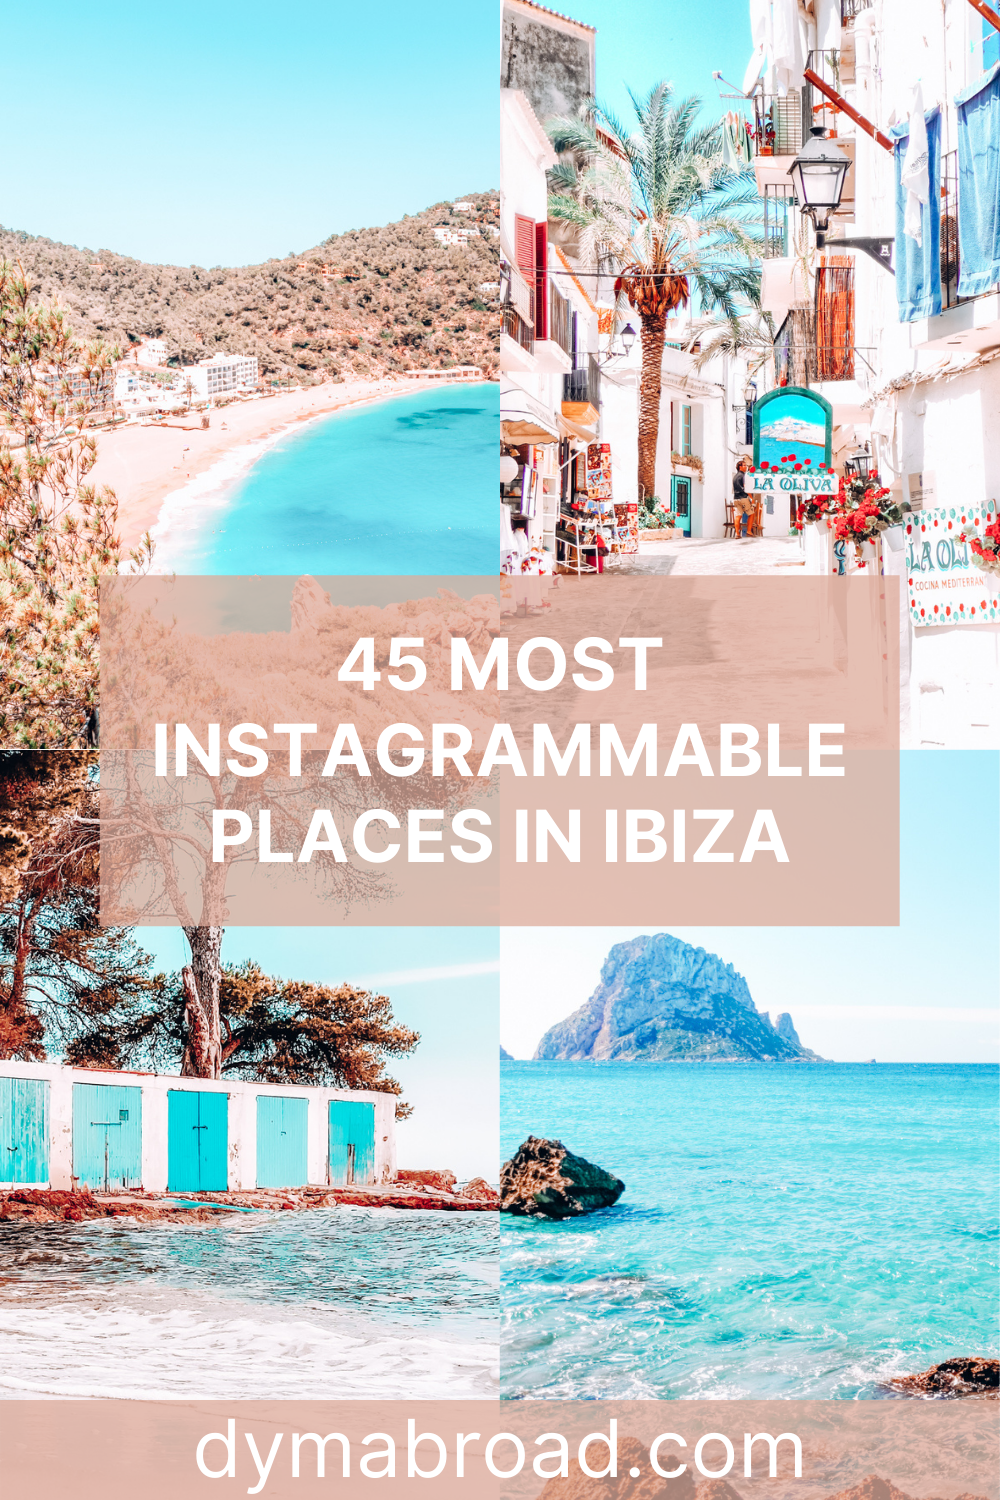 Instagrammable places in Ibiza Pinterest image